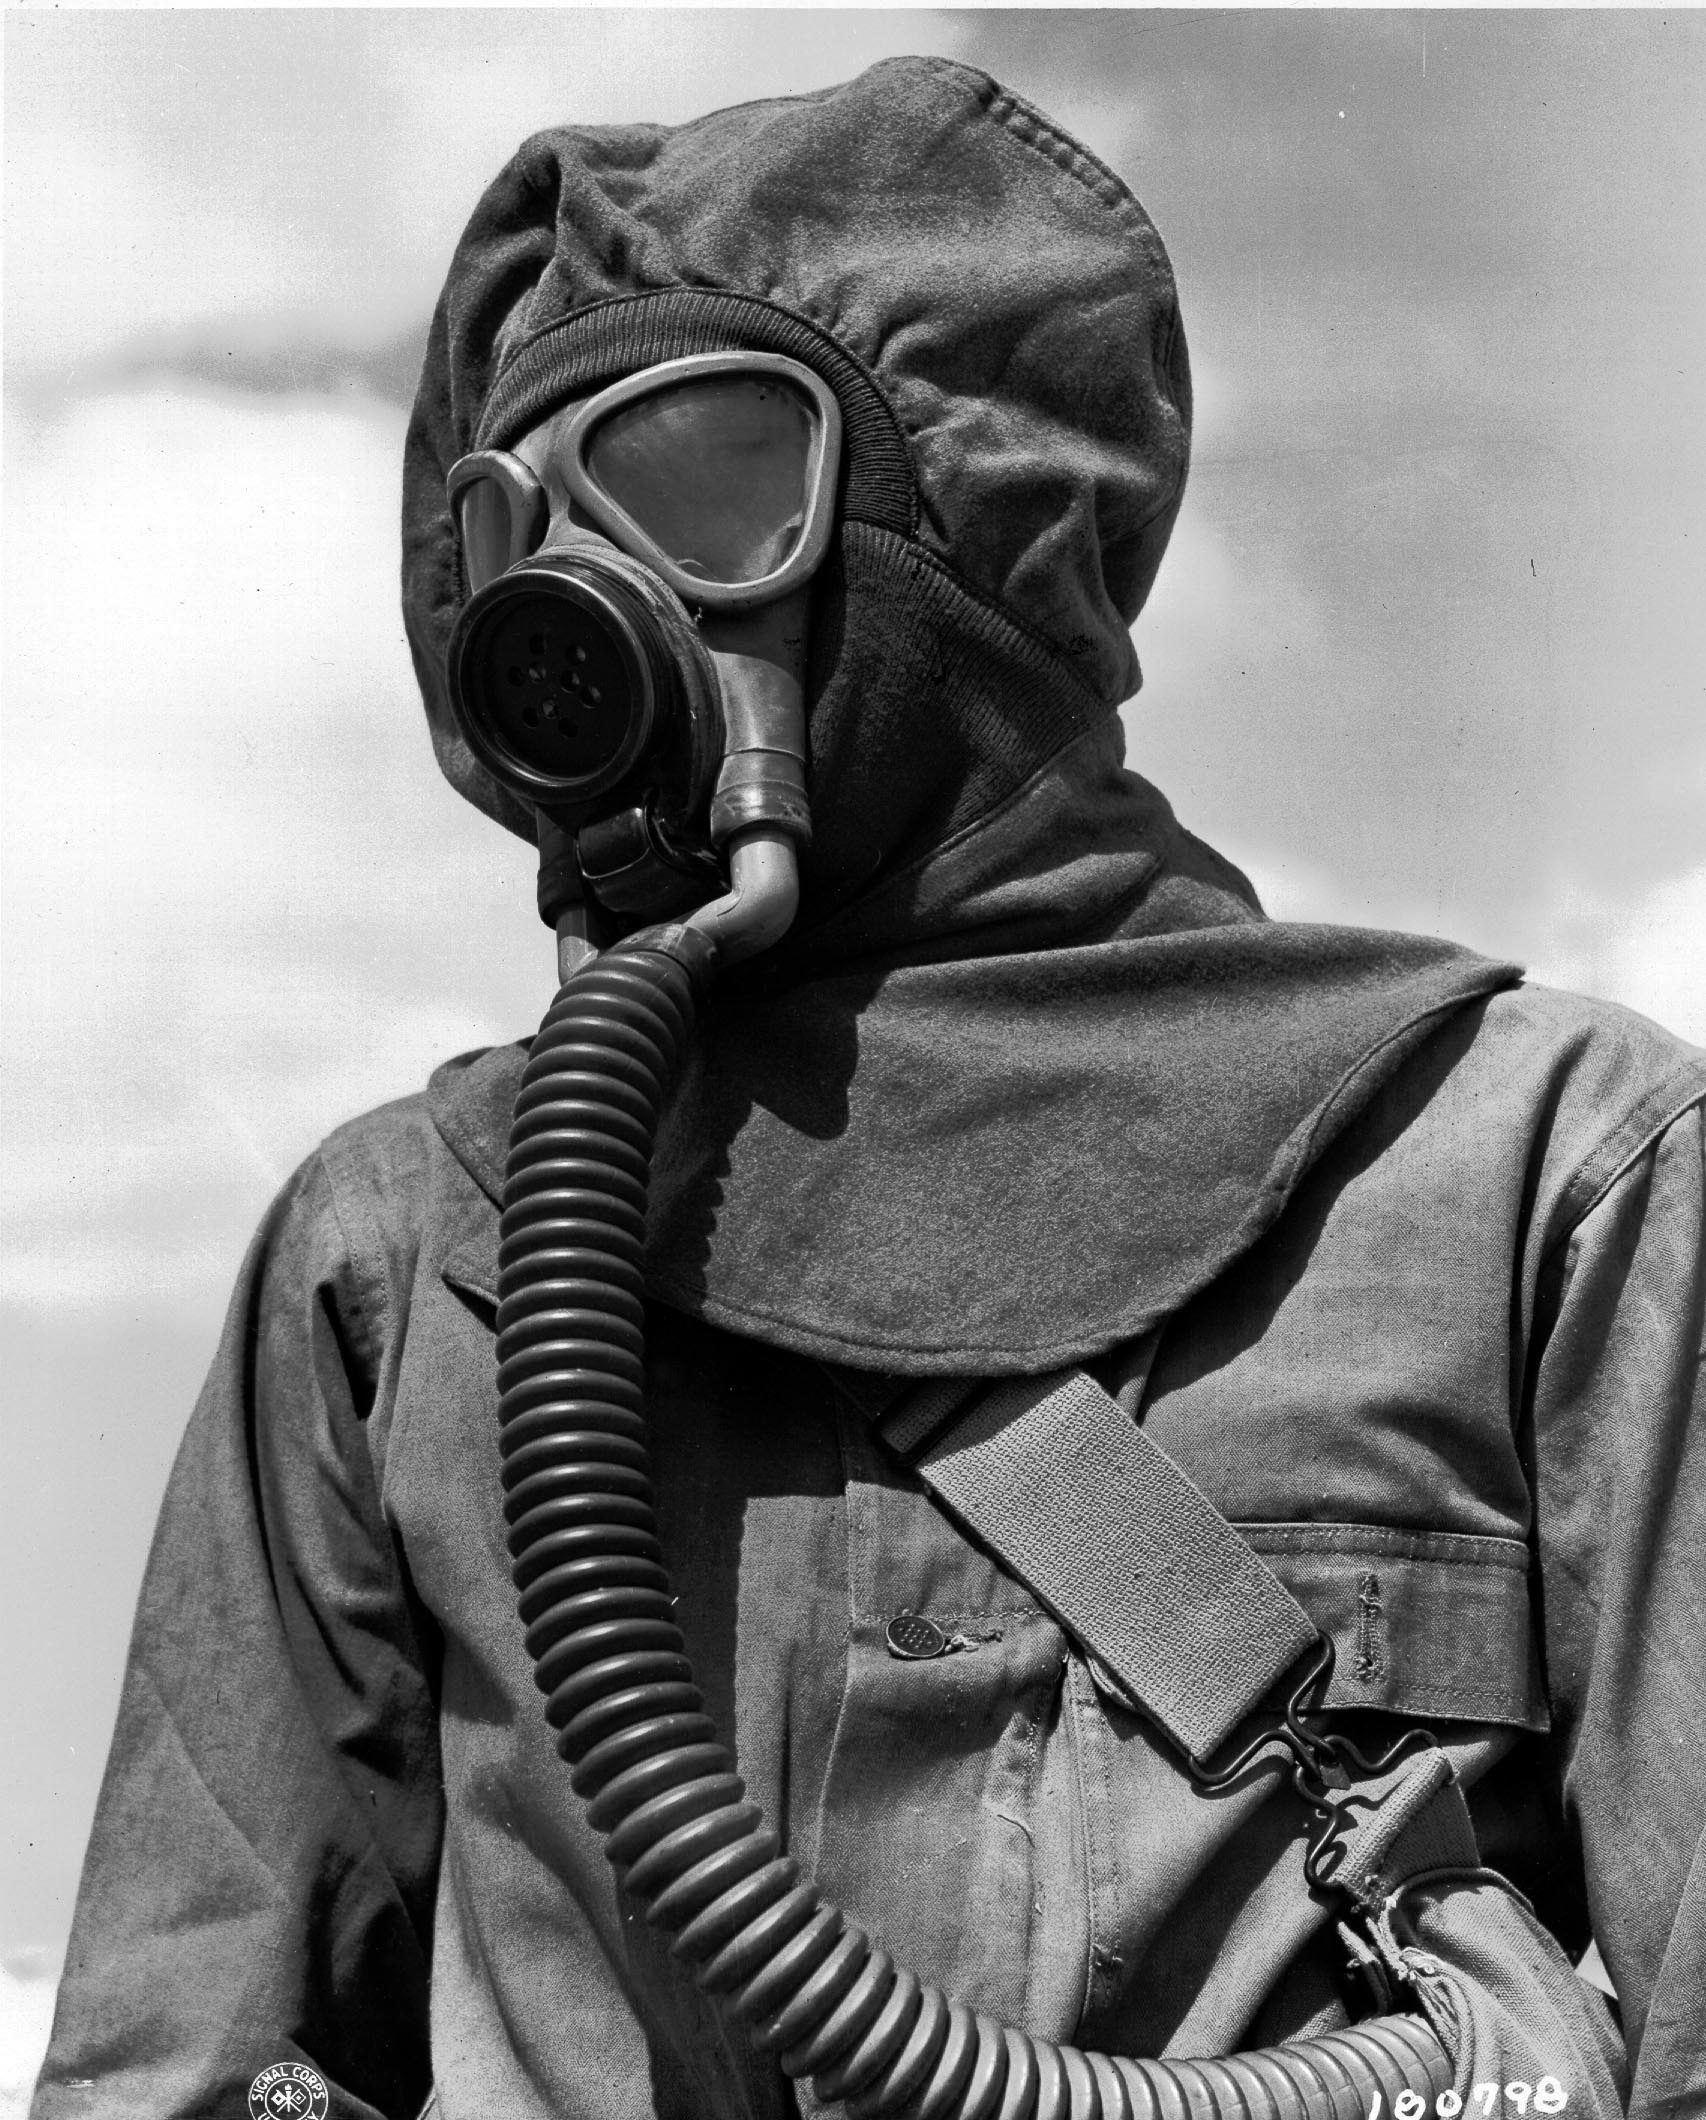 14th November 1943: U.S. Army Infantry – training for a gas attack ...